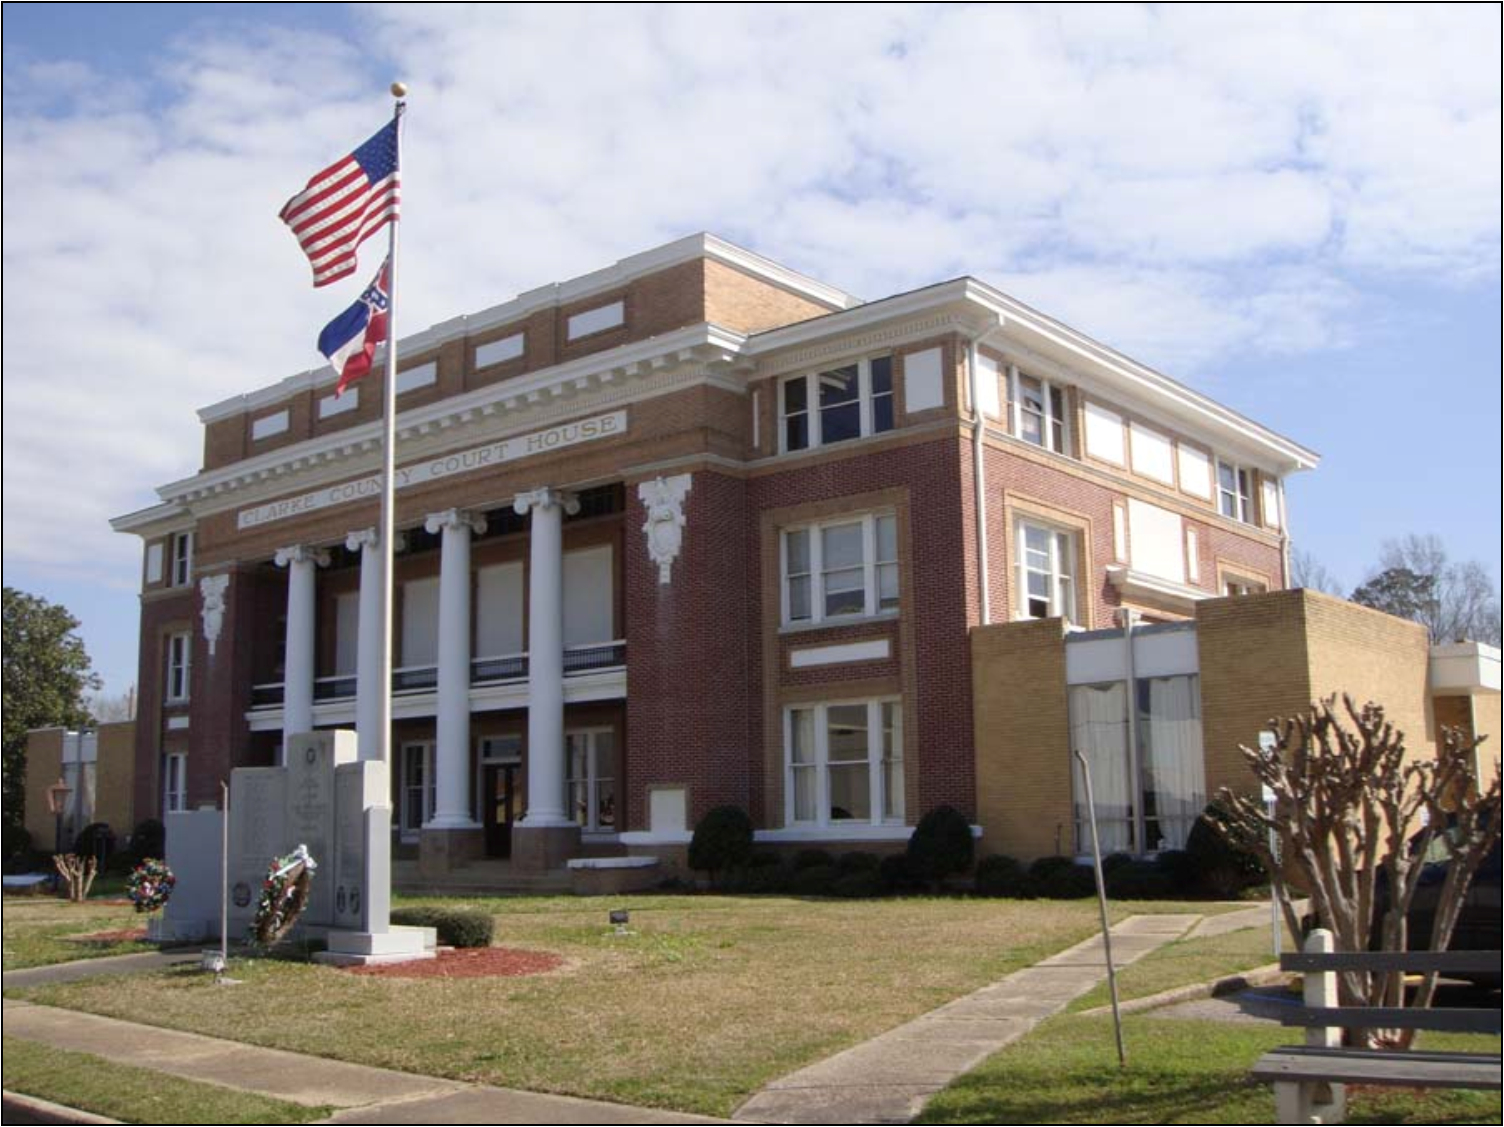 Quitman courthouse